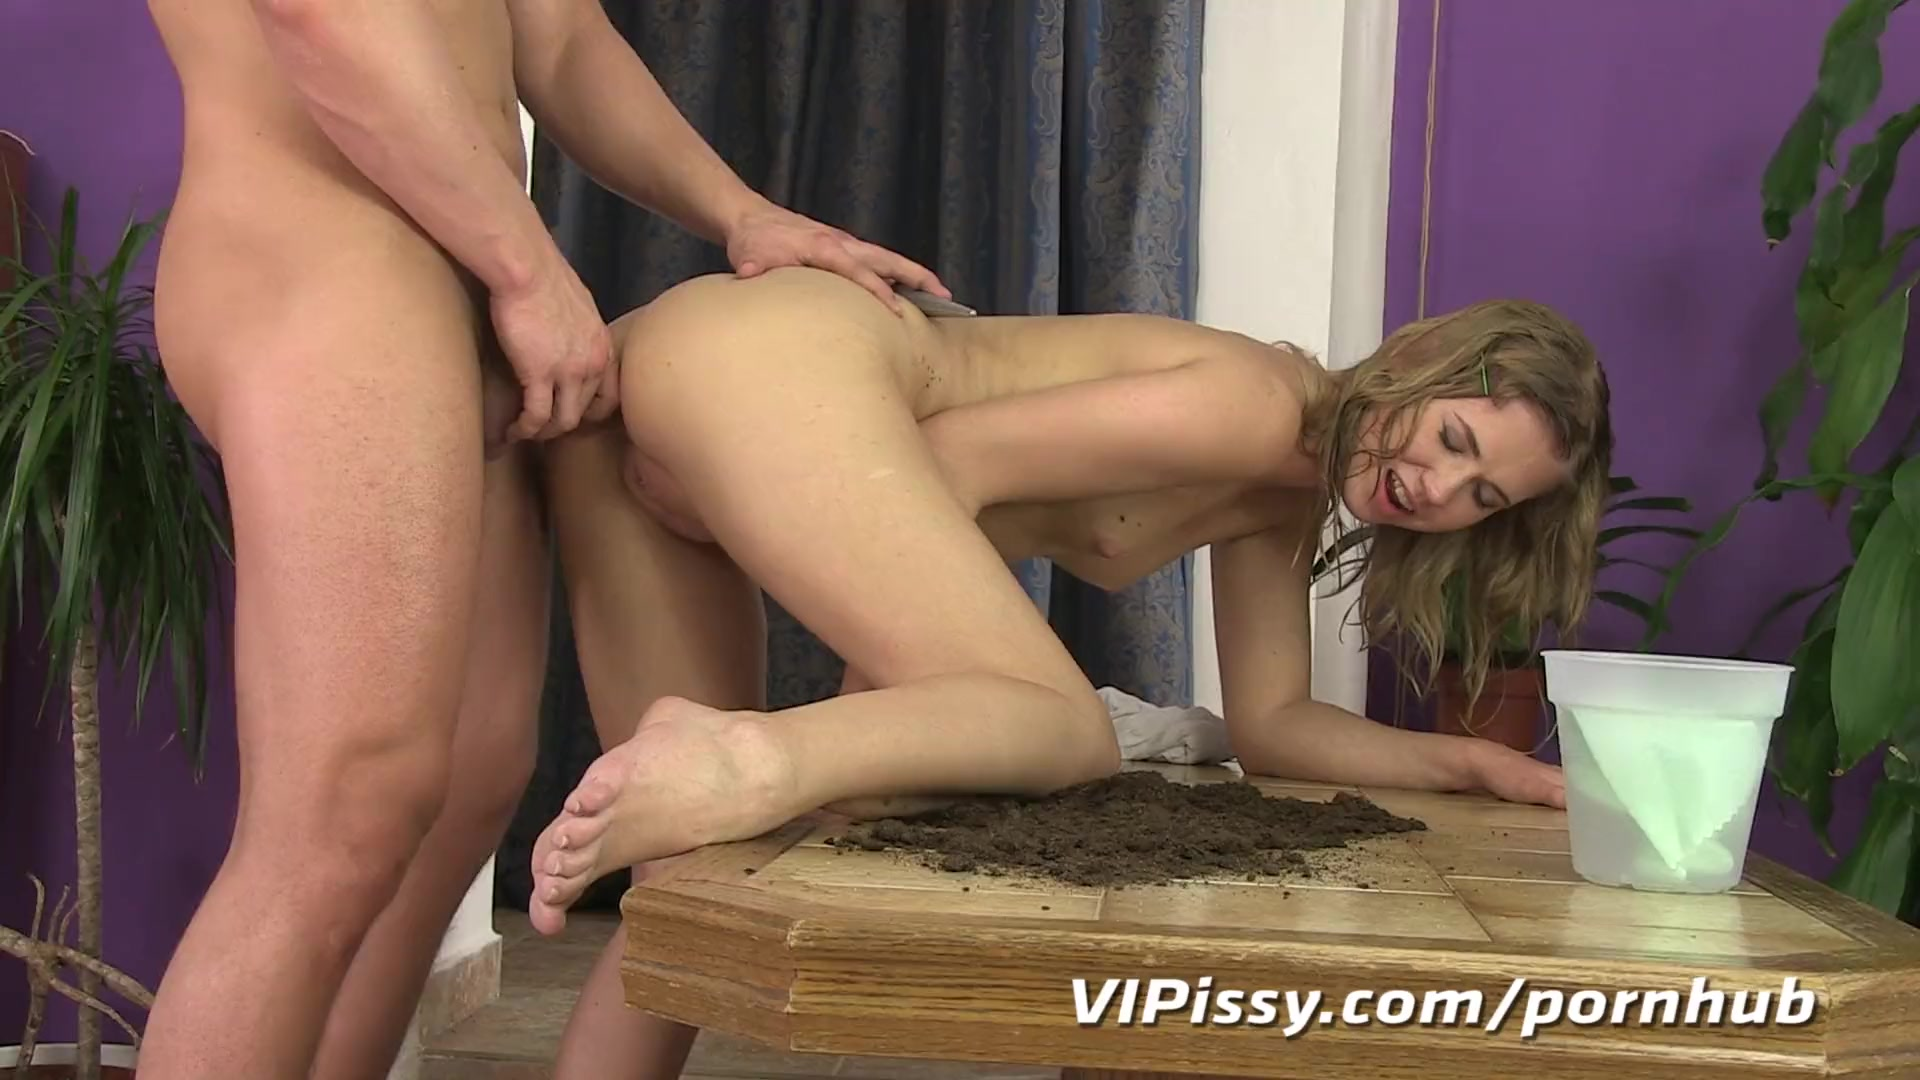 Vipissy pissing pornstars get completely drenched 9